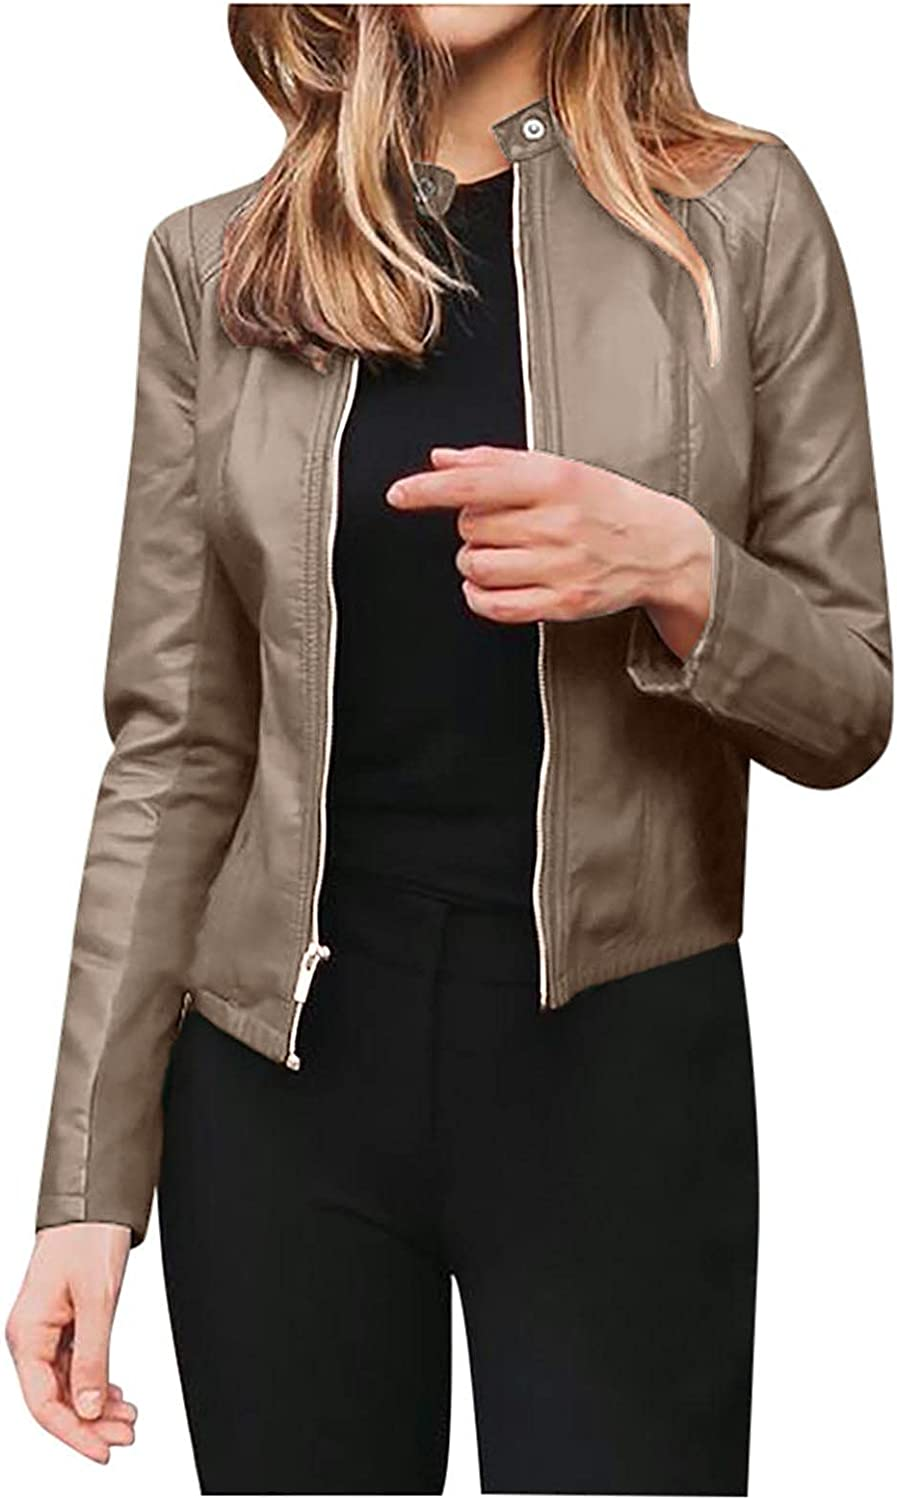 Slim Max Raleigh Mall 54% OFF Faux Leather Jacket Zip Up Long Coat Sleeve for Short Women